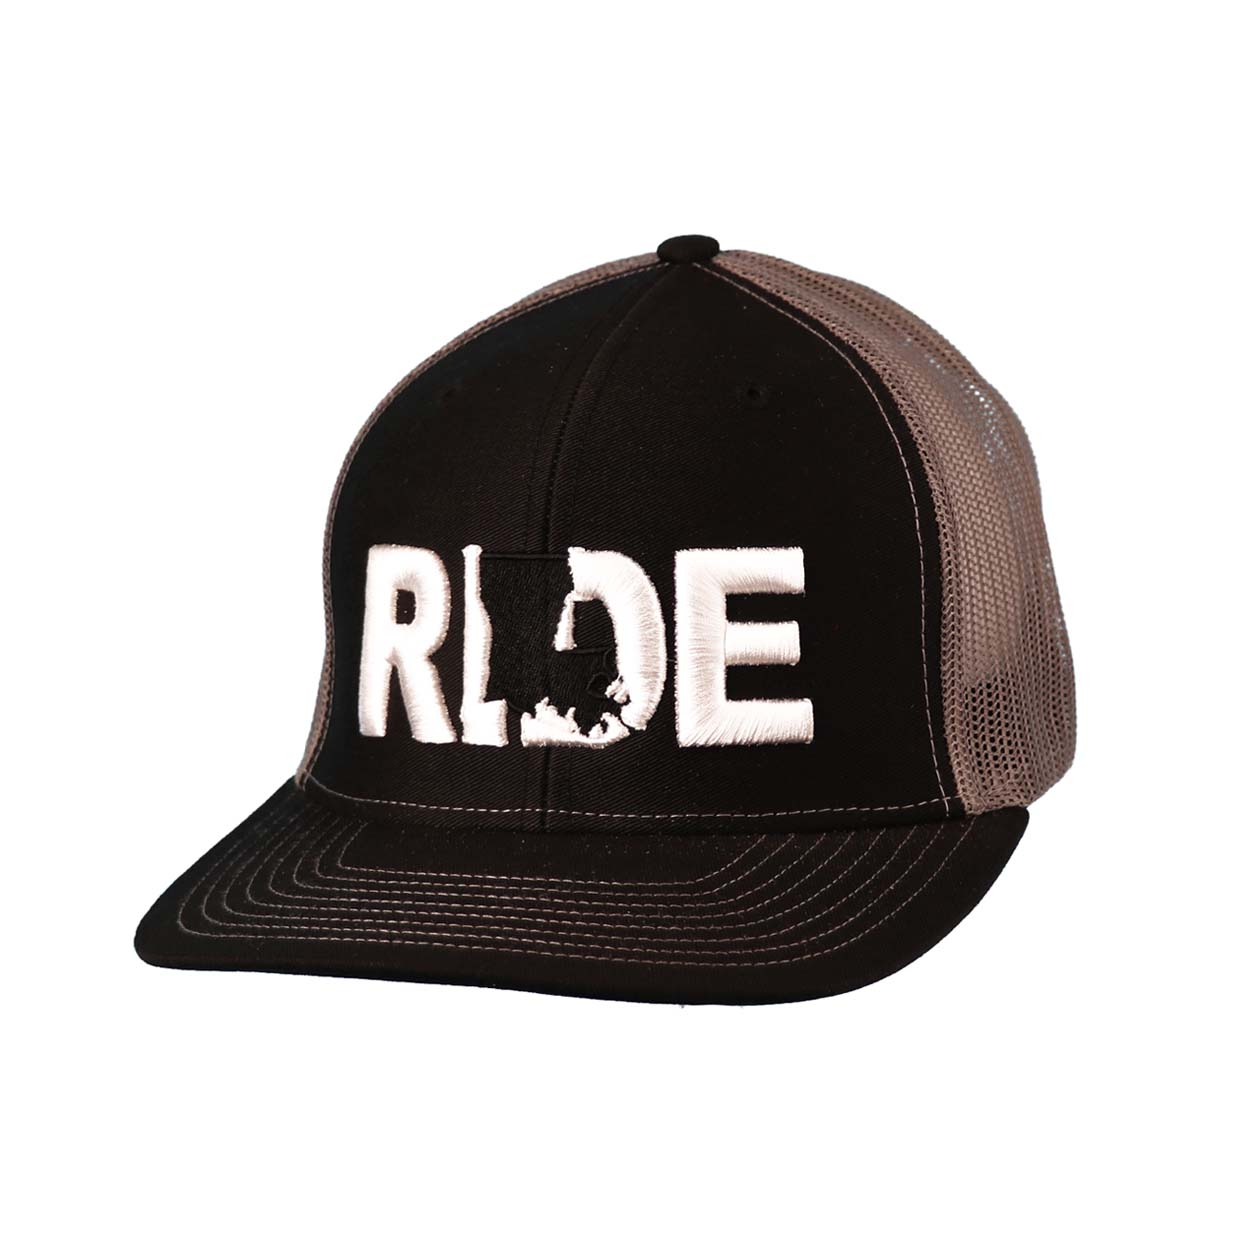 Ride Louisiana Classic Embroidered Snapback Trucker Hat Black/White